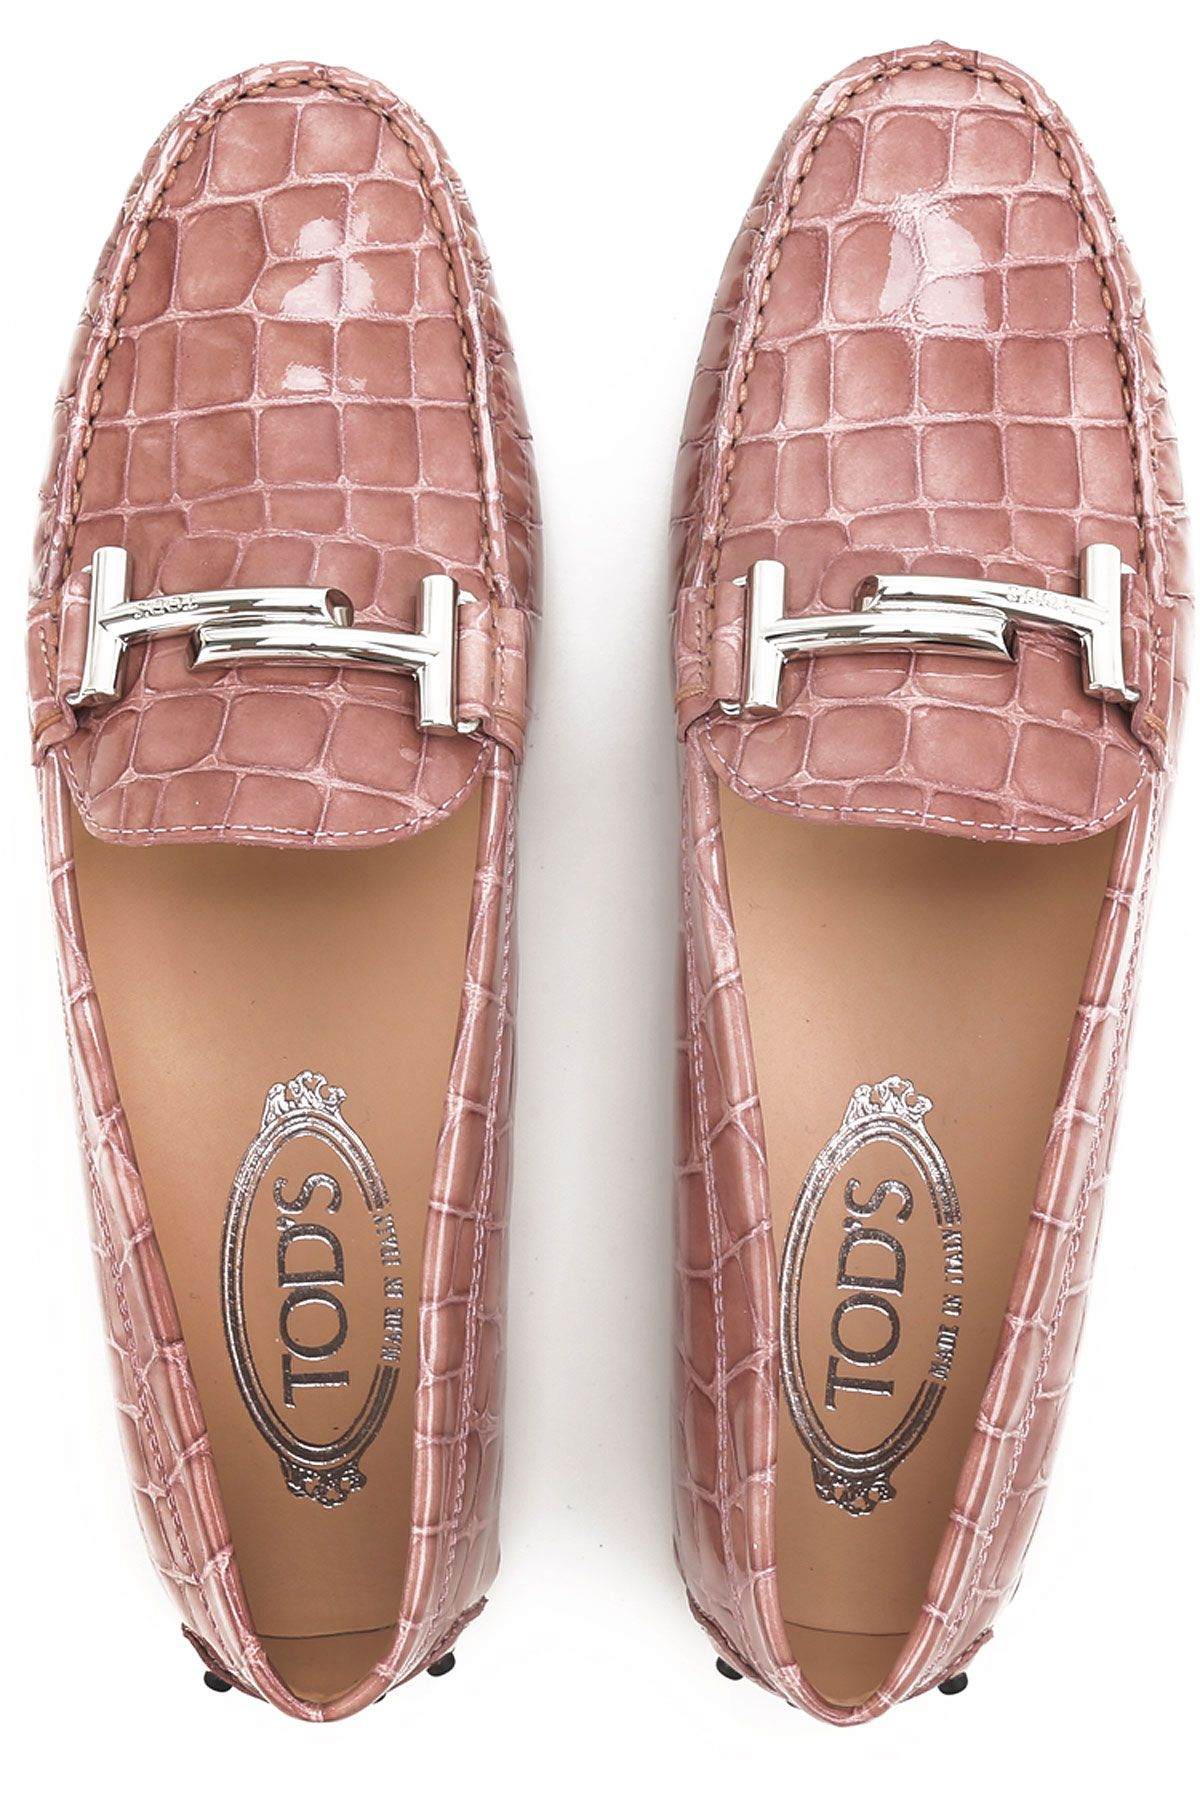 8ee150869fa68 Tod's Shoes for Women and Loafers from the Current Collection. Find Tods  Shoes by J.P.